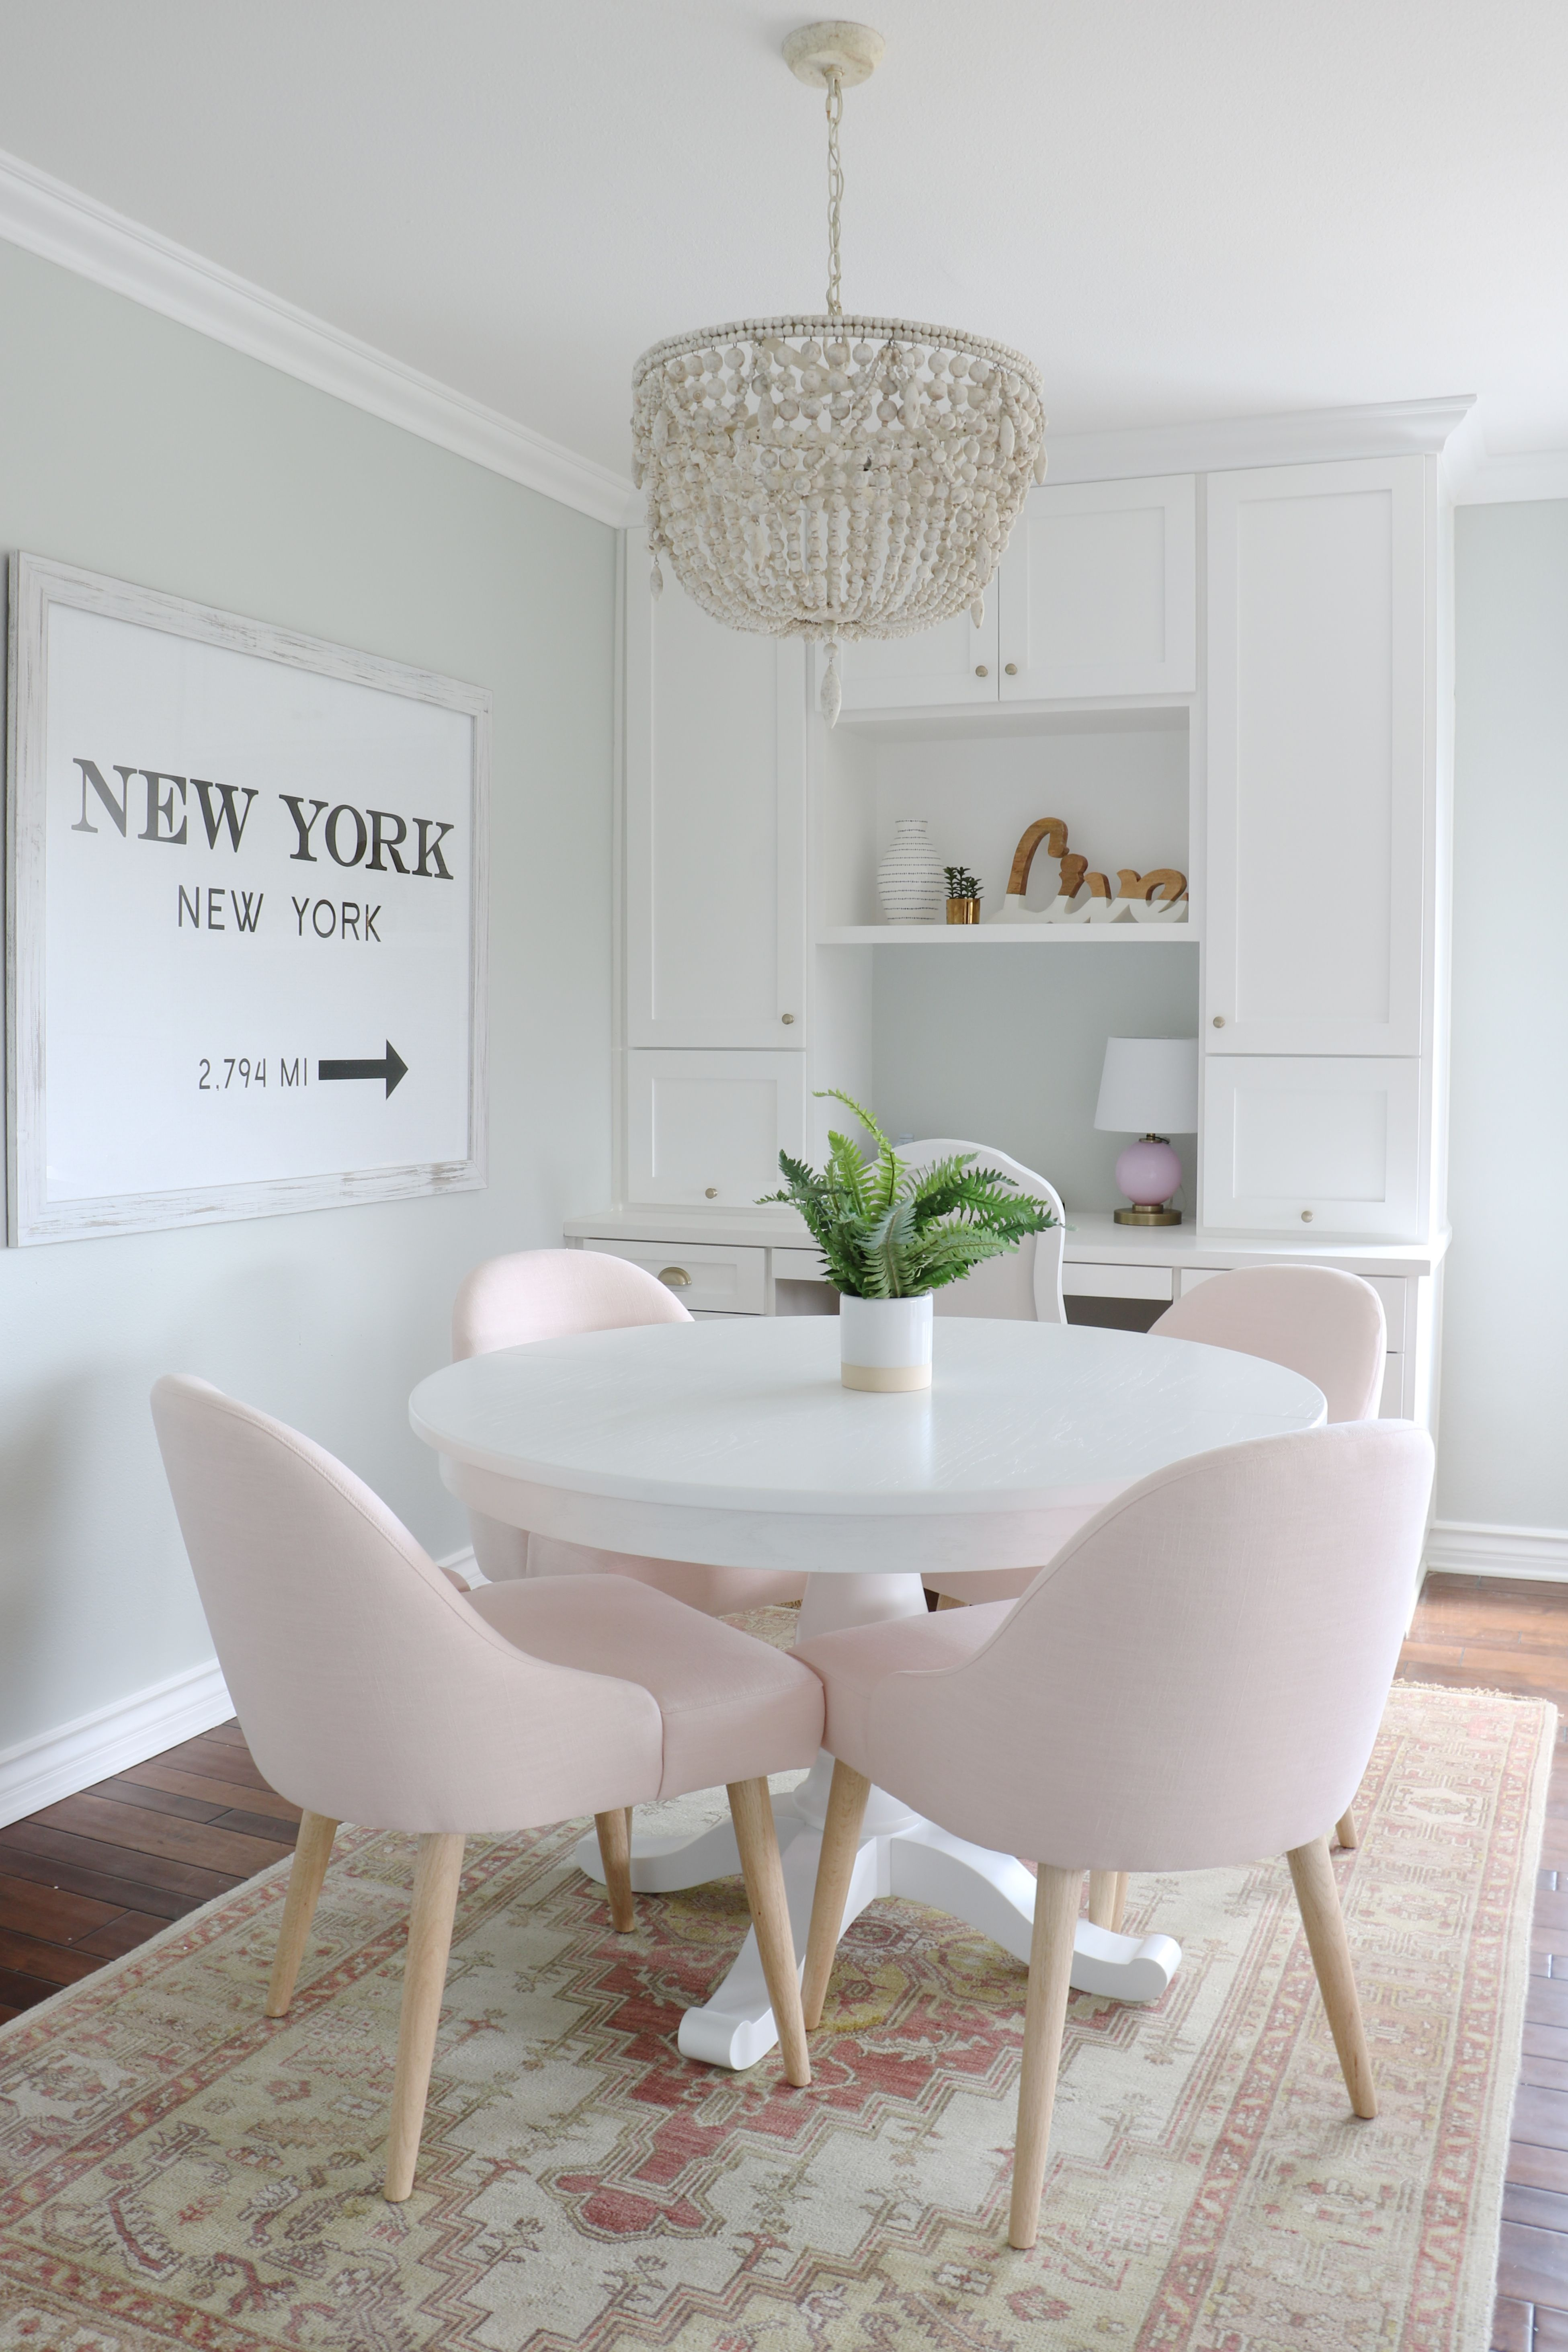 Img 4328 Kathryn Sykora Home Design Dining Room Small Pink